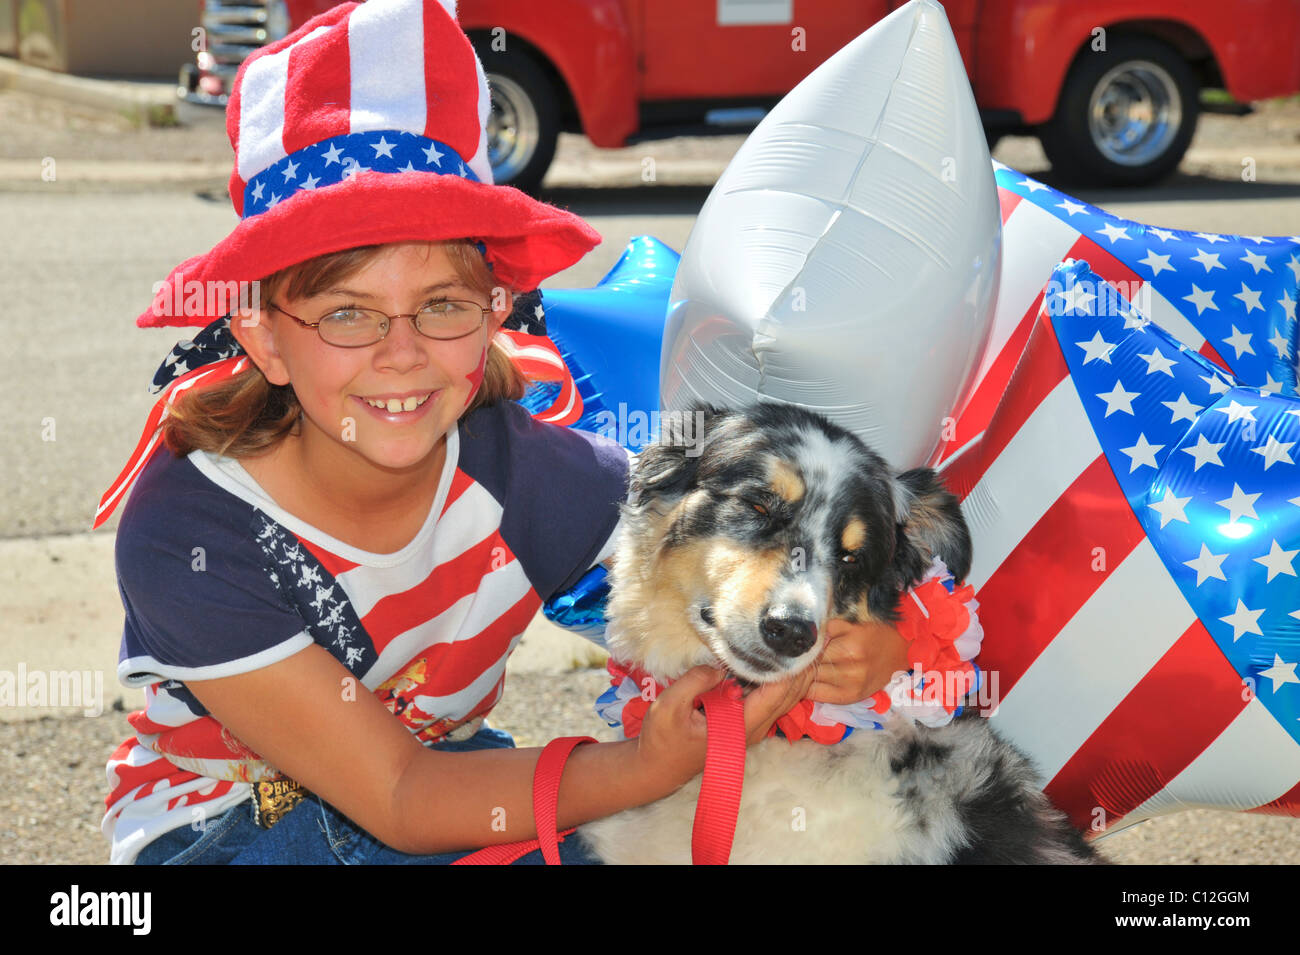 A patriotic young girl and her blind dog are in the 4th of July parade in Capitan, New Mexico. - Stock Image